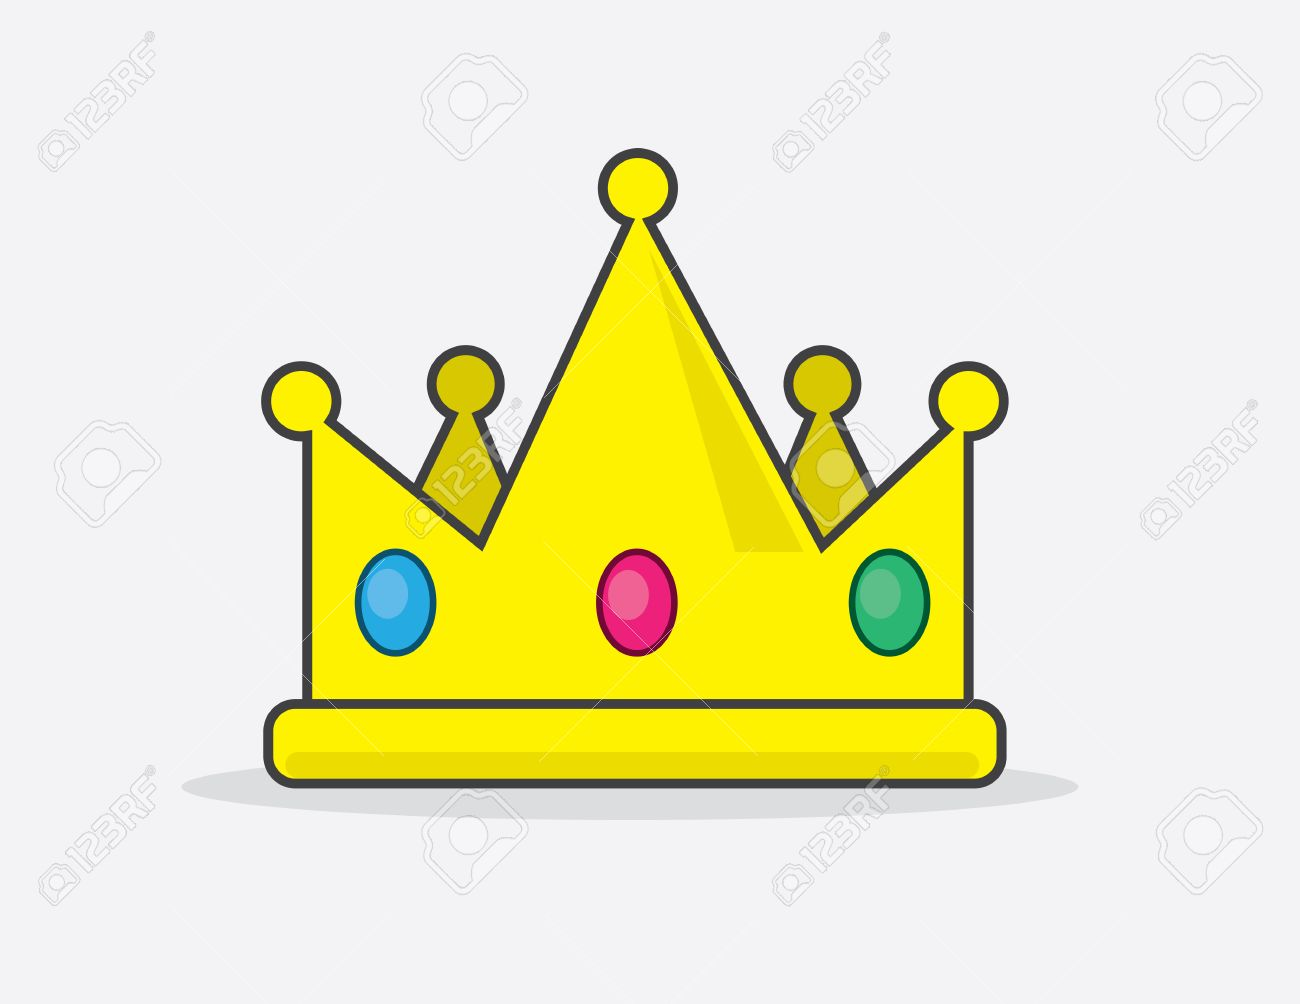 Cartoon Crown With Embedded Jewels Royalty Free Cliparts Vectors And Stock Illustration Image 24232612 Crown, crown, happy birthday vector images, royal crown png. cartoon crown with embedded jewels